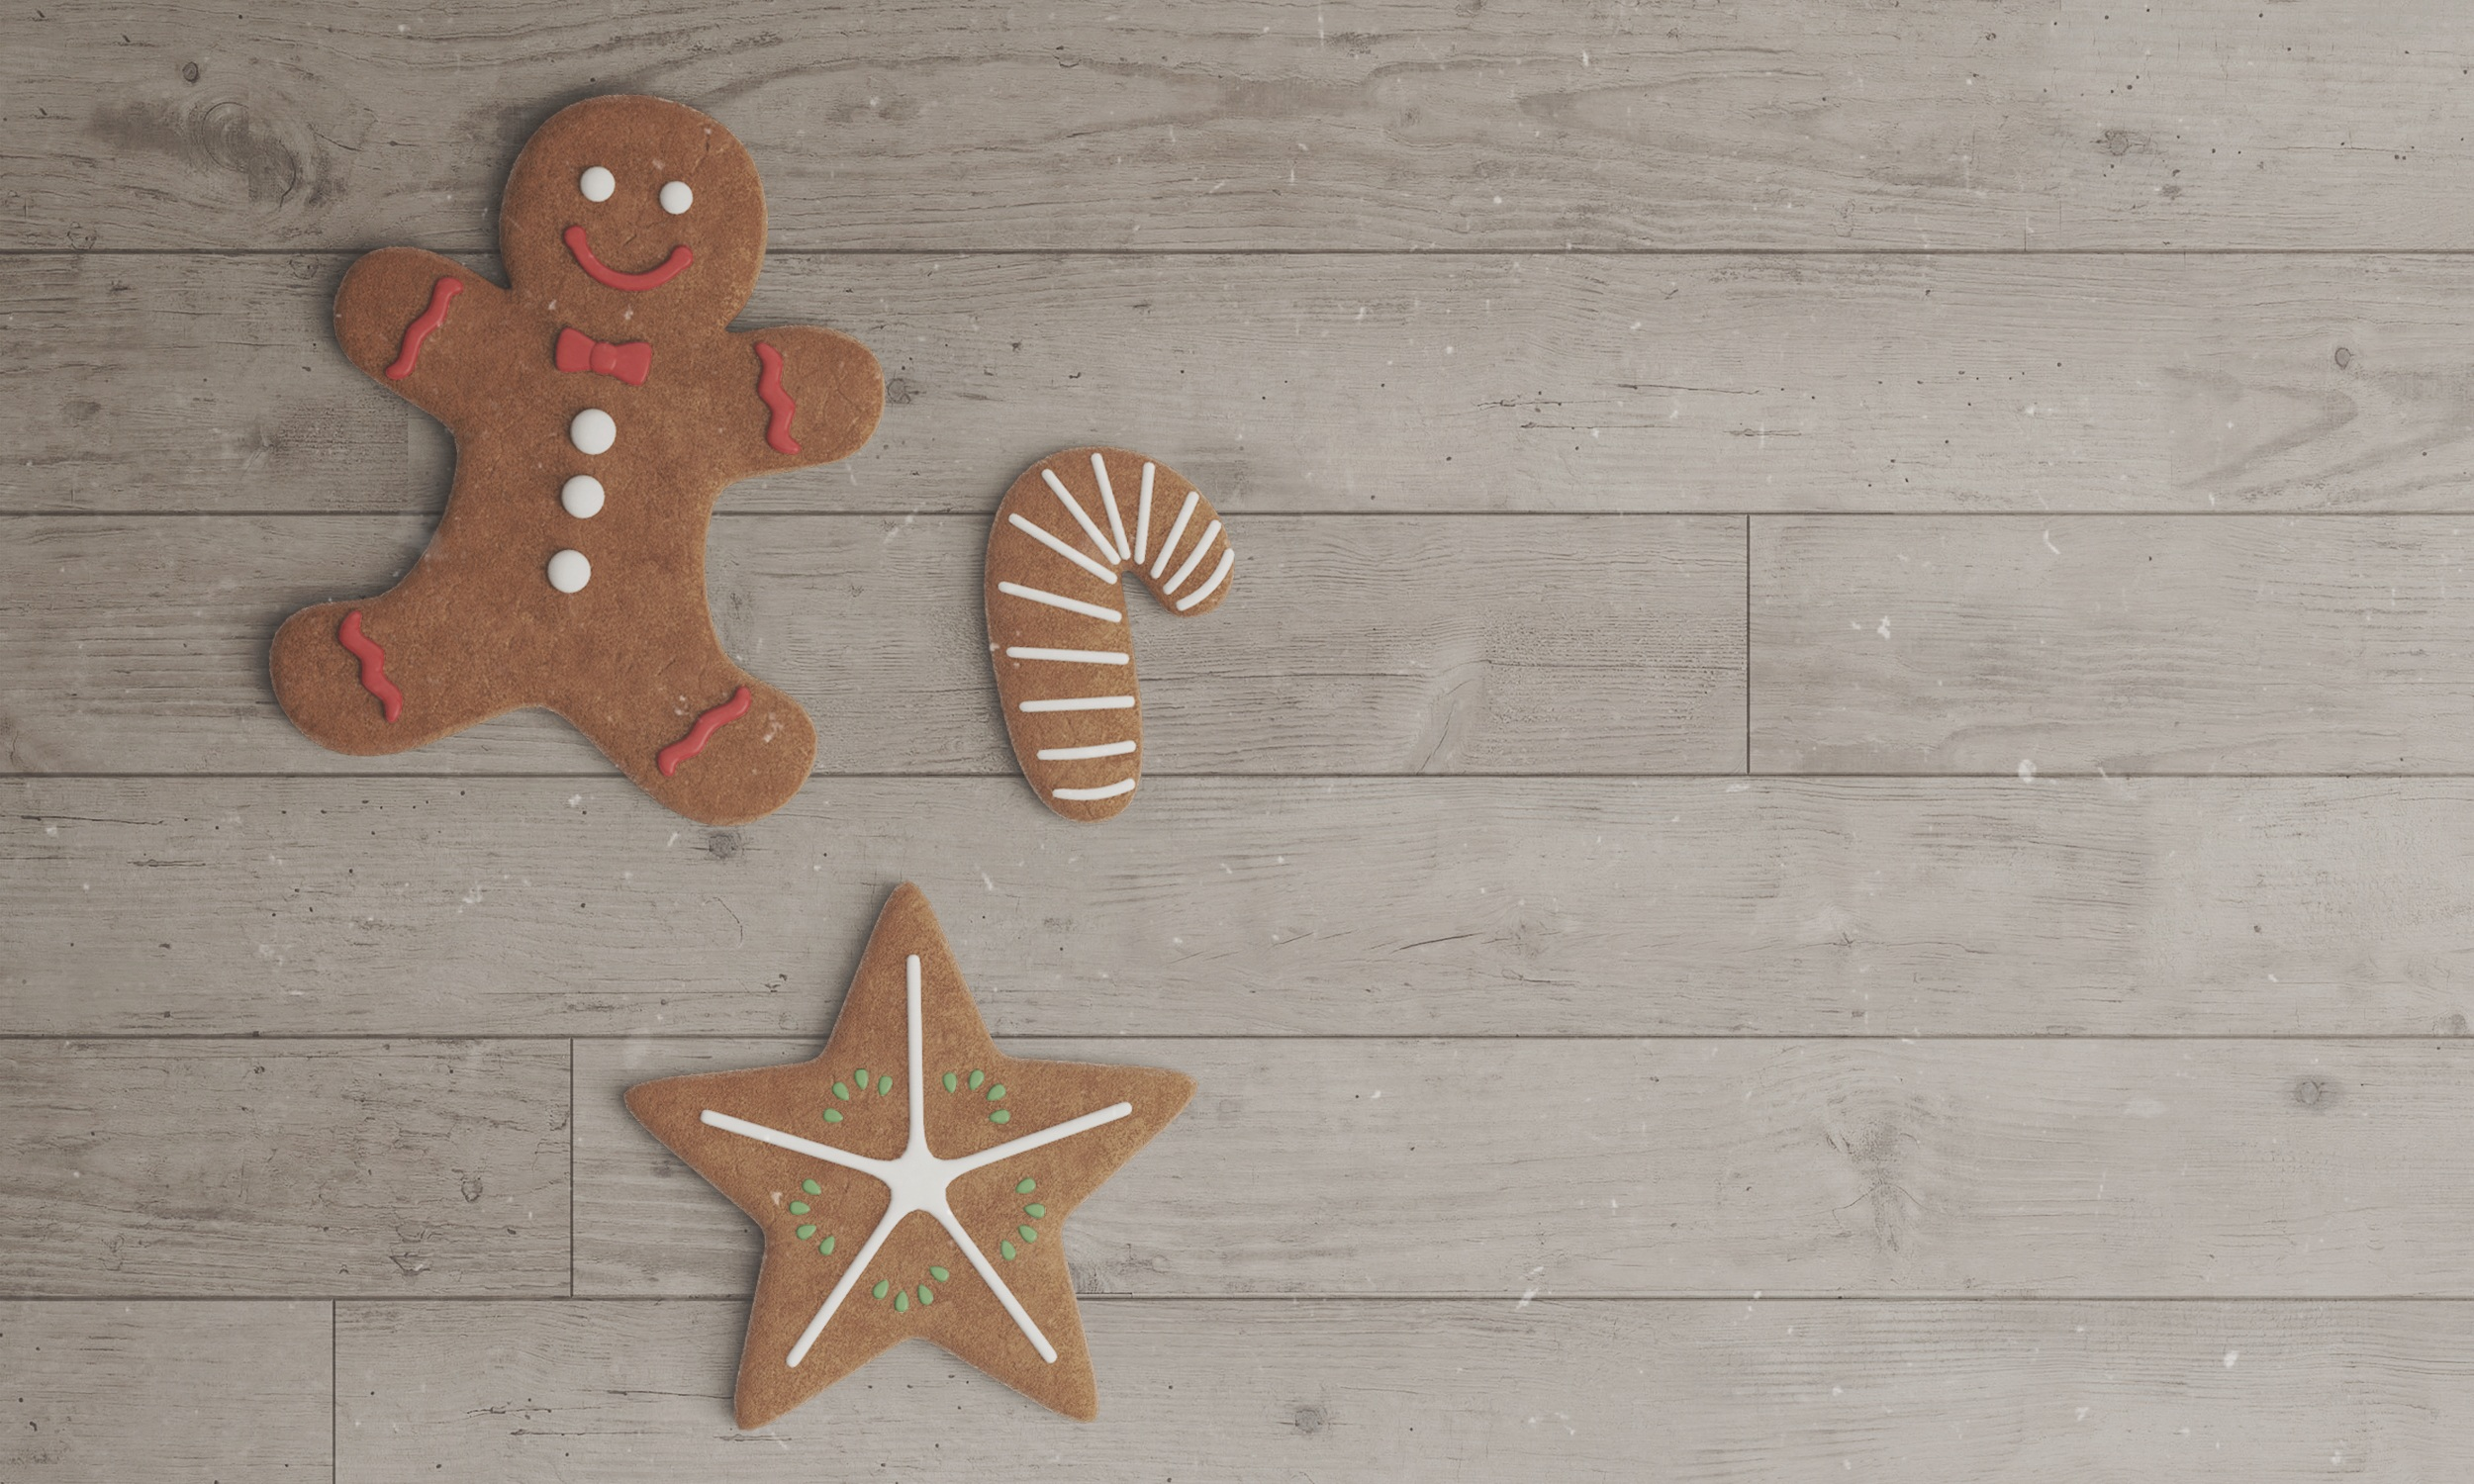 Gingerbread Christmas Cookies, Bake, Baked, Biscuit, Christmas, HQ Photo